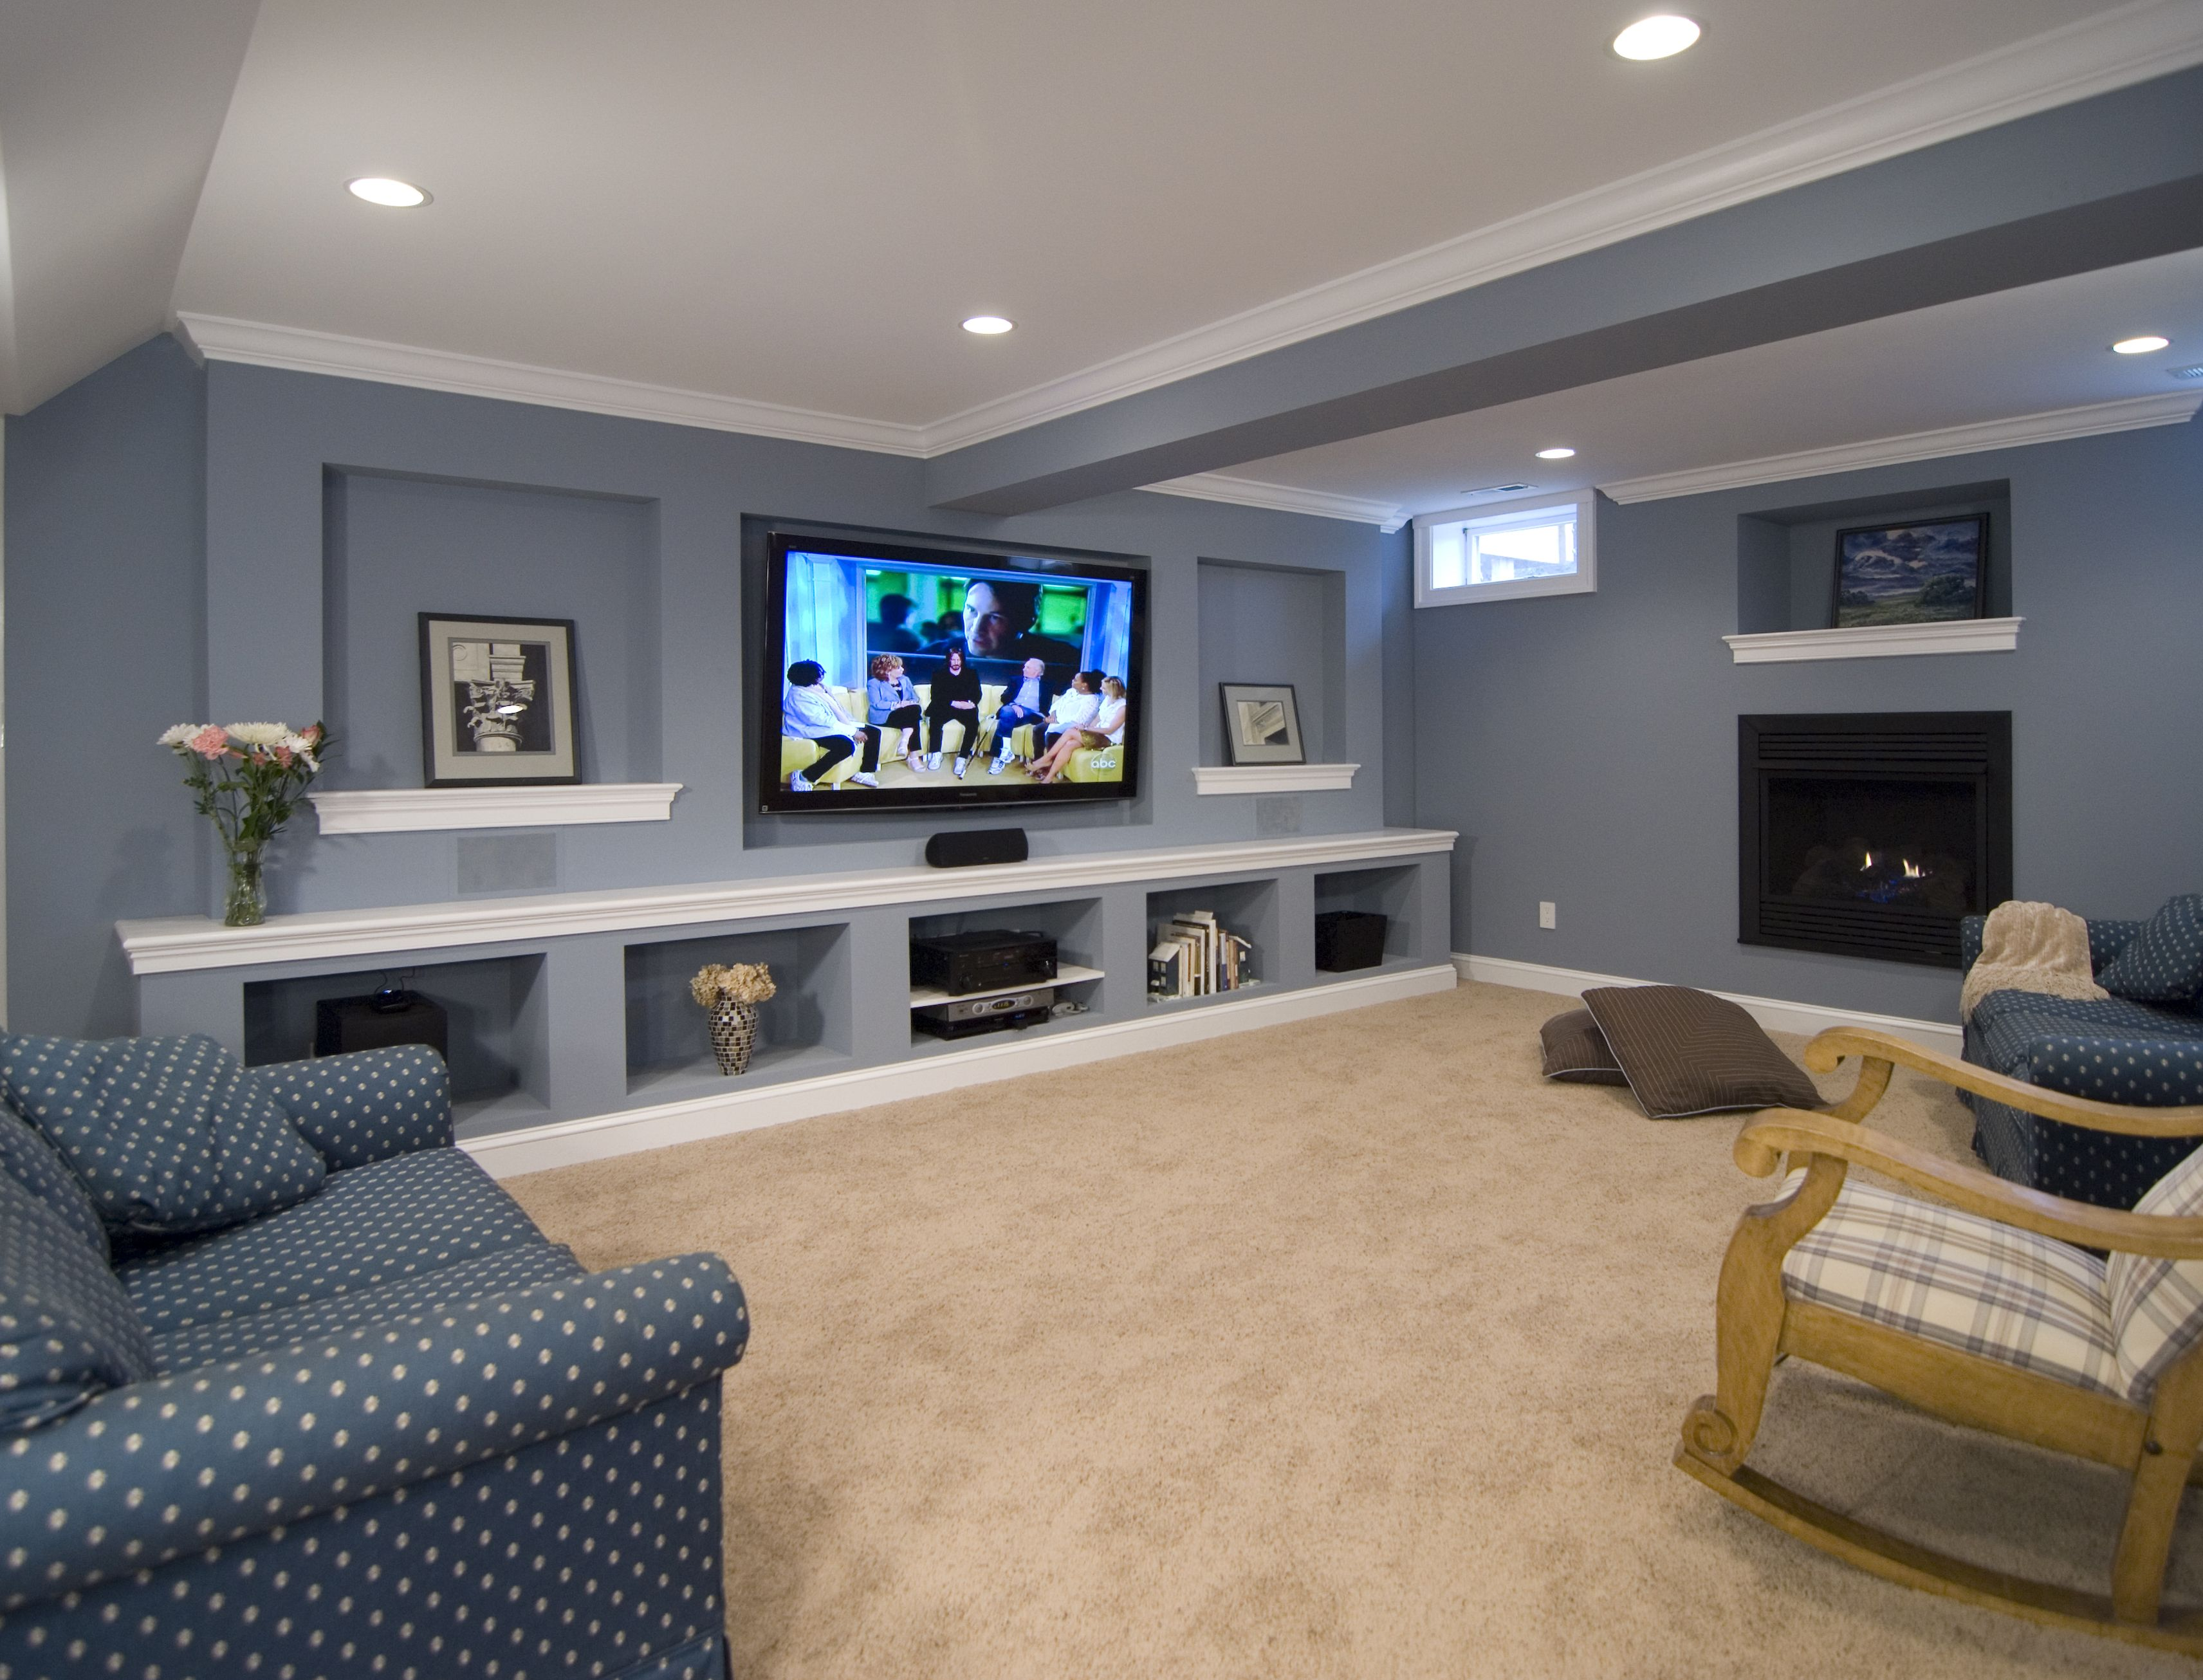 Entertainment Wall Ideas This Remodeled Basement Includes An Entertainment Wall And A Cozy